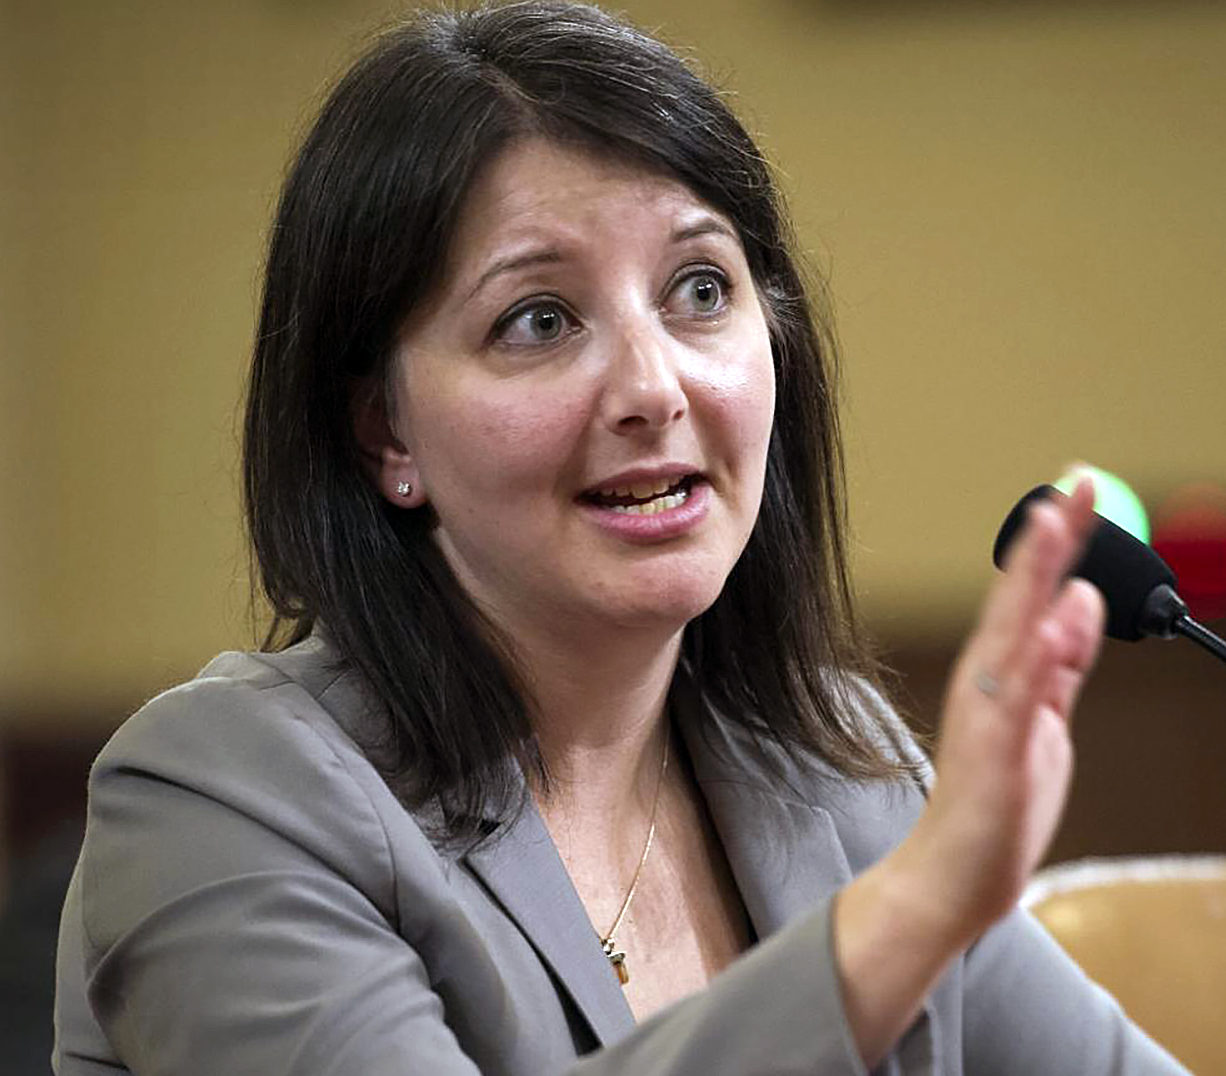 Dr. Mandy Cohen, North Carolina Department of Health and Human Services secretary, seen here in a 2019 appearance, has announced plans to let hospitals request additional beds due to the spread of coronavirus in North Carolina. Photo courtesy of DHHS.